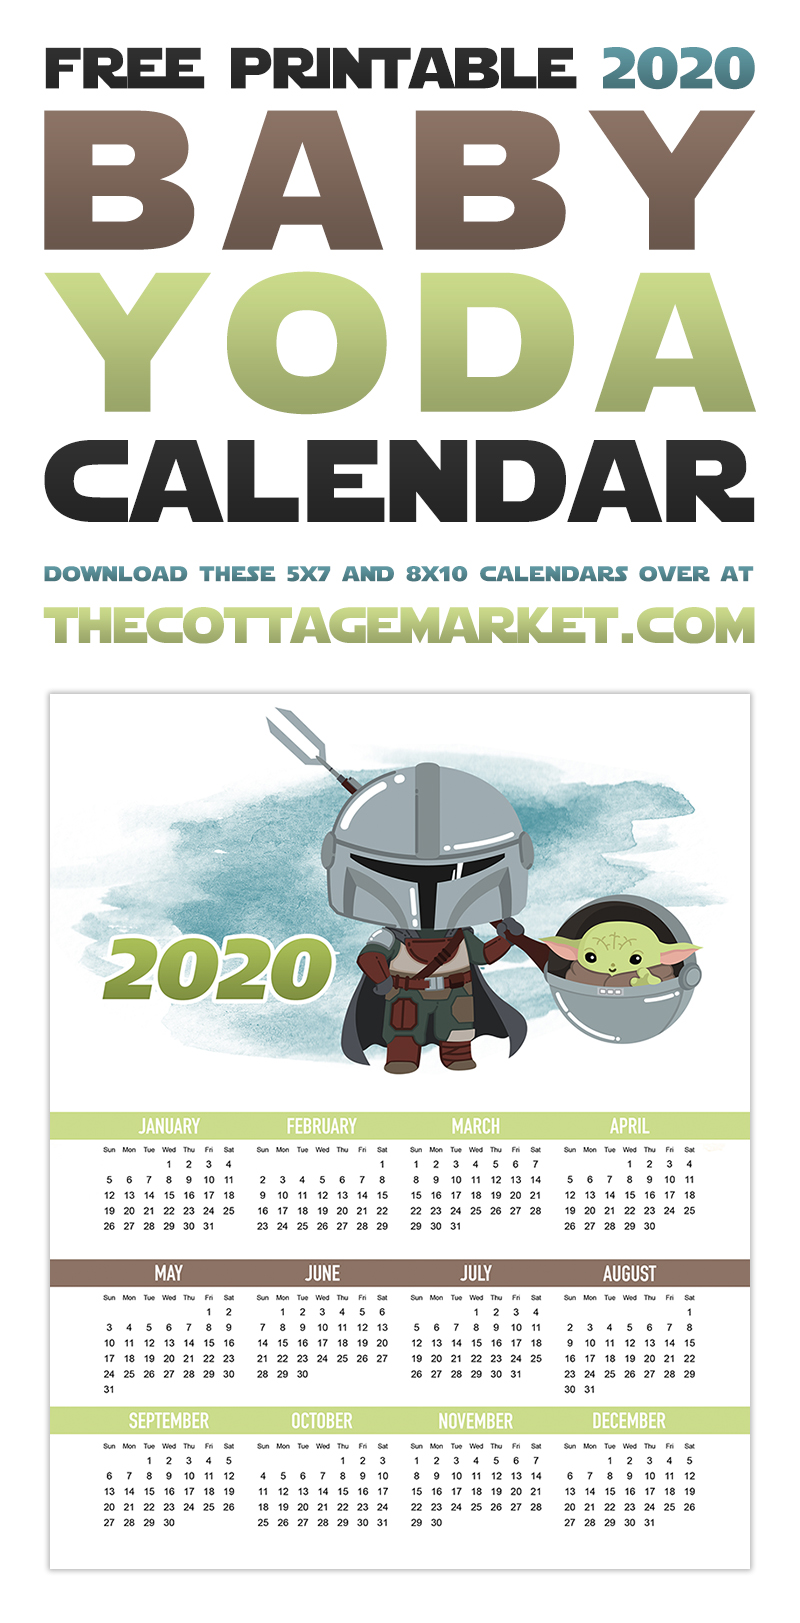 This Free Printable 2020 Baby Yoda Calendar is just what the New Year Needs!  This little cutie will help you get organized in 2020 in the cutest way!